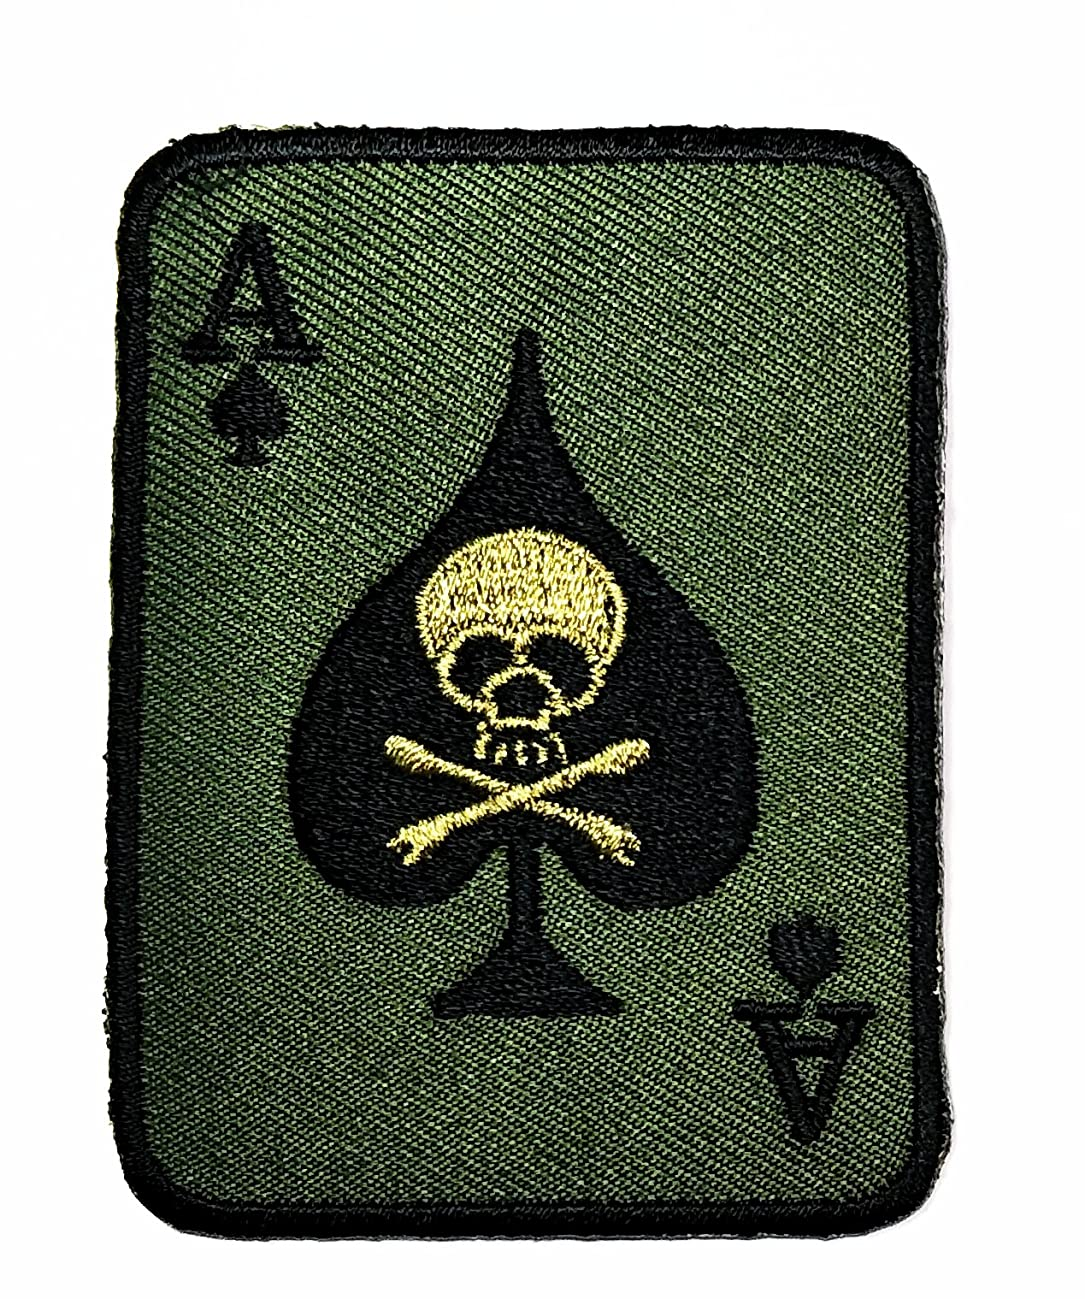 HHO Skull ACE of Spades Death Skull Card Patch Green Patch Embroidered DIY Patches, Cute Applique Sew Iron on Kids Craft Patch for Bags Jackets Jeans Clothes